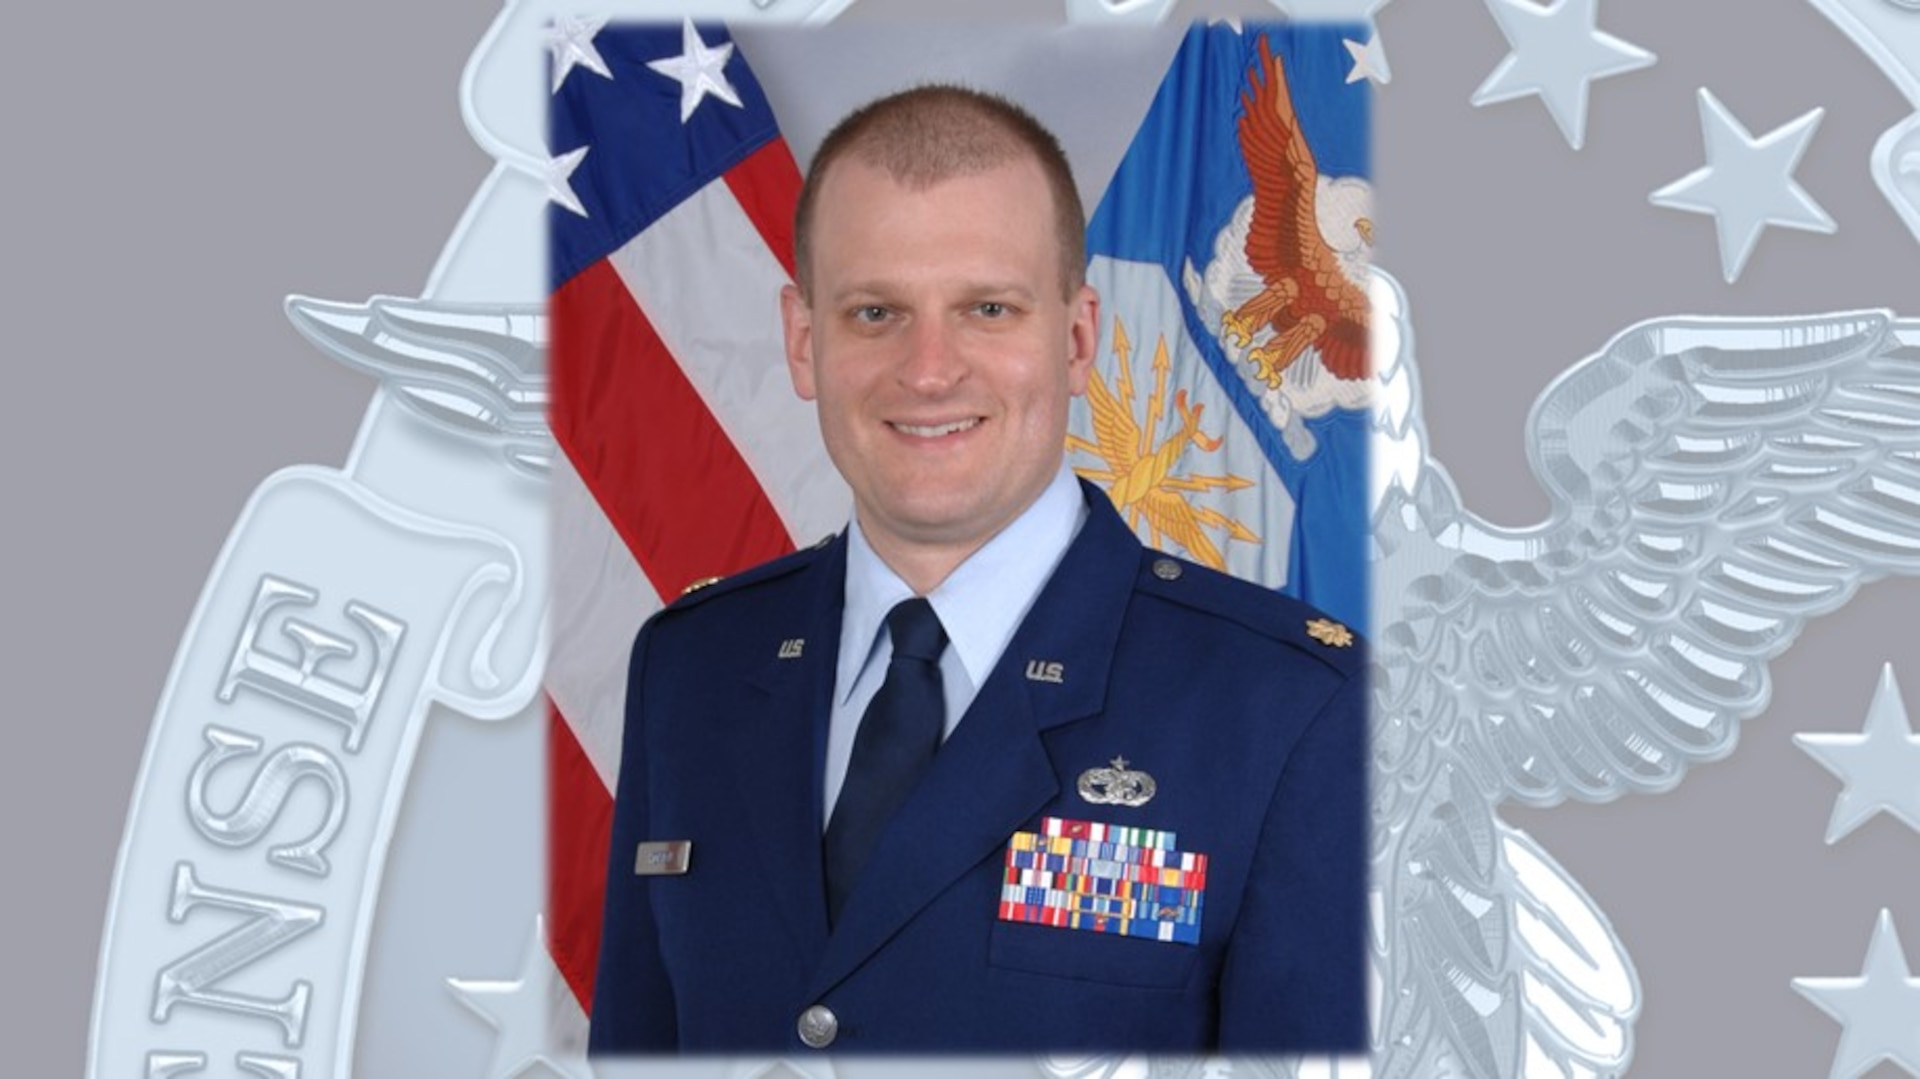 Air Force officer in uniform